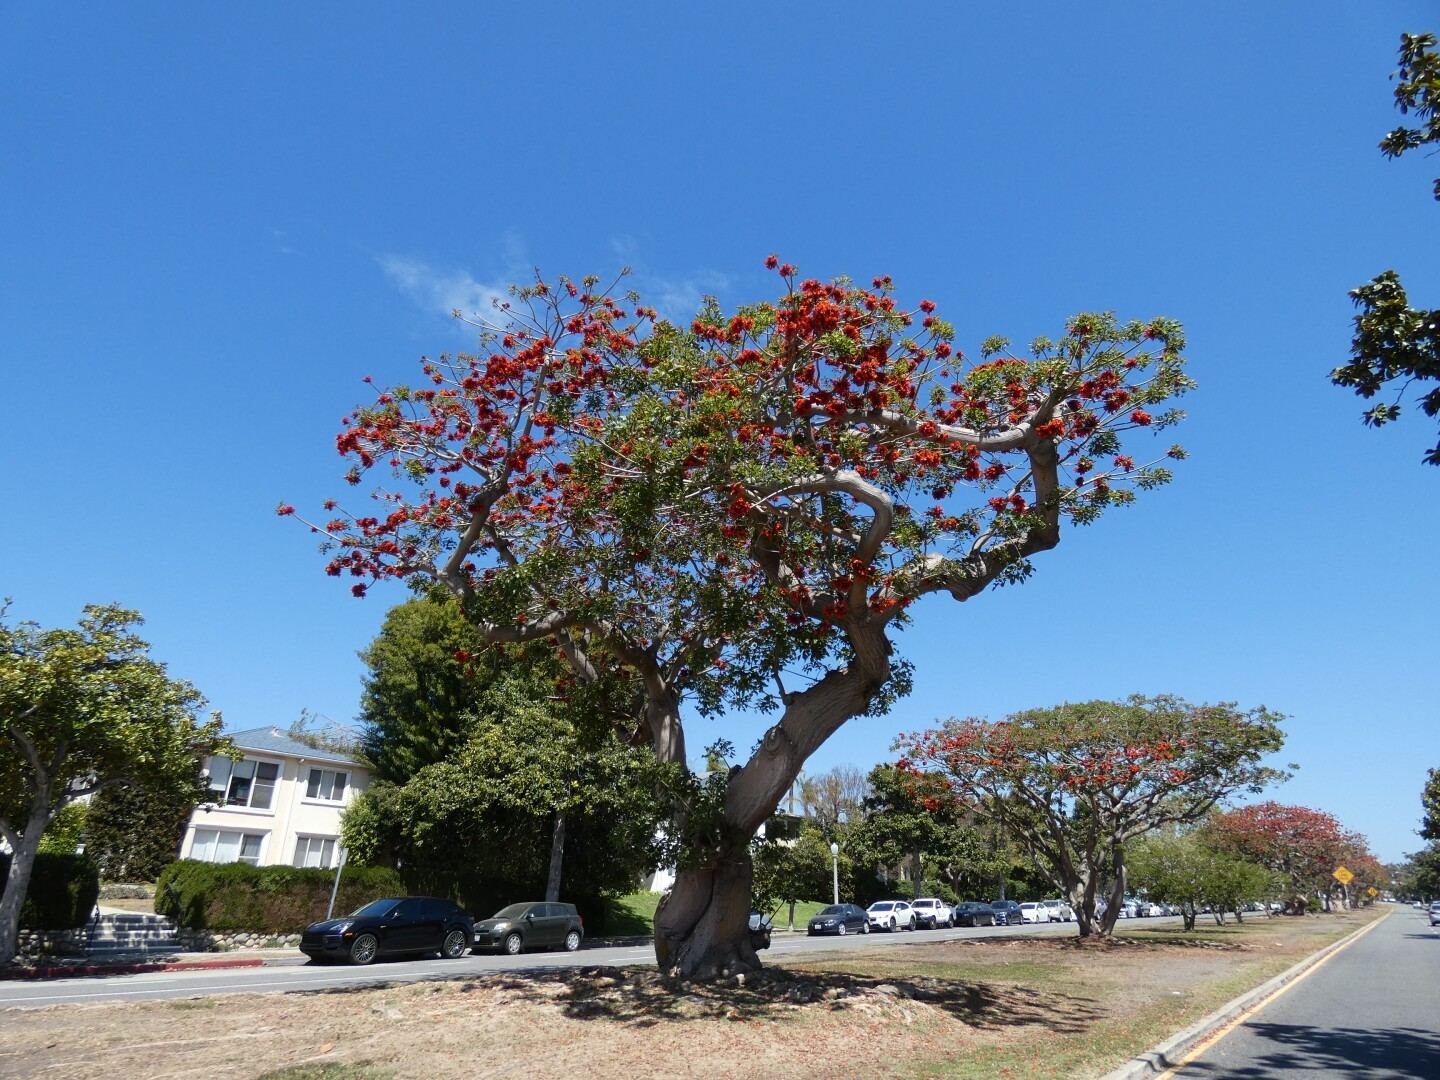 Along San Vicente Boulevard between 26th Street and Brigham Avenue, a a stretch of coral trees along the median can be found.